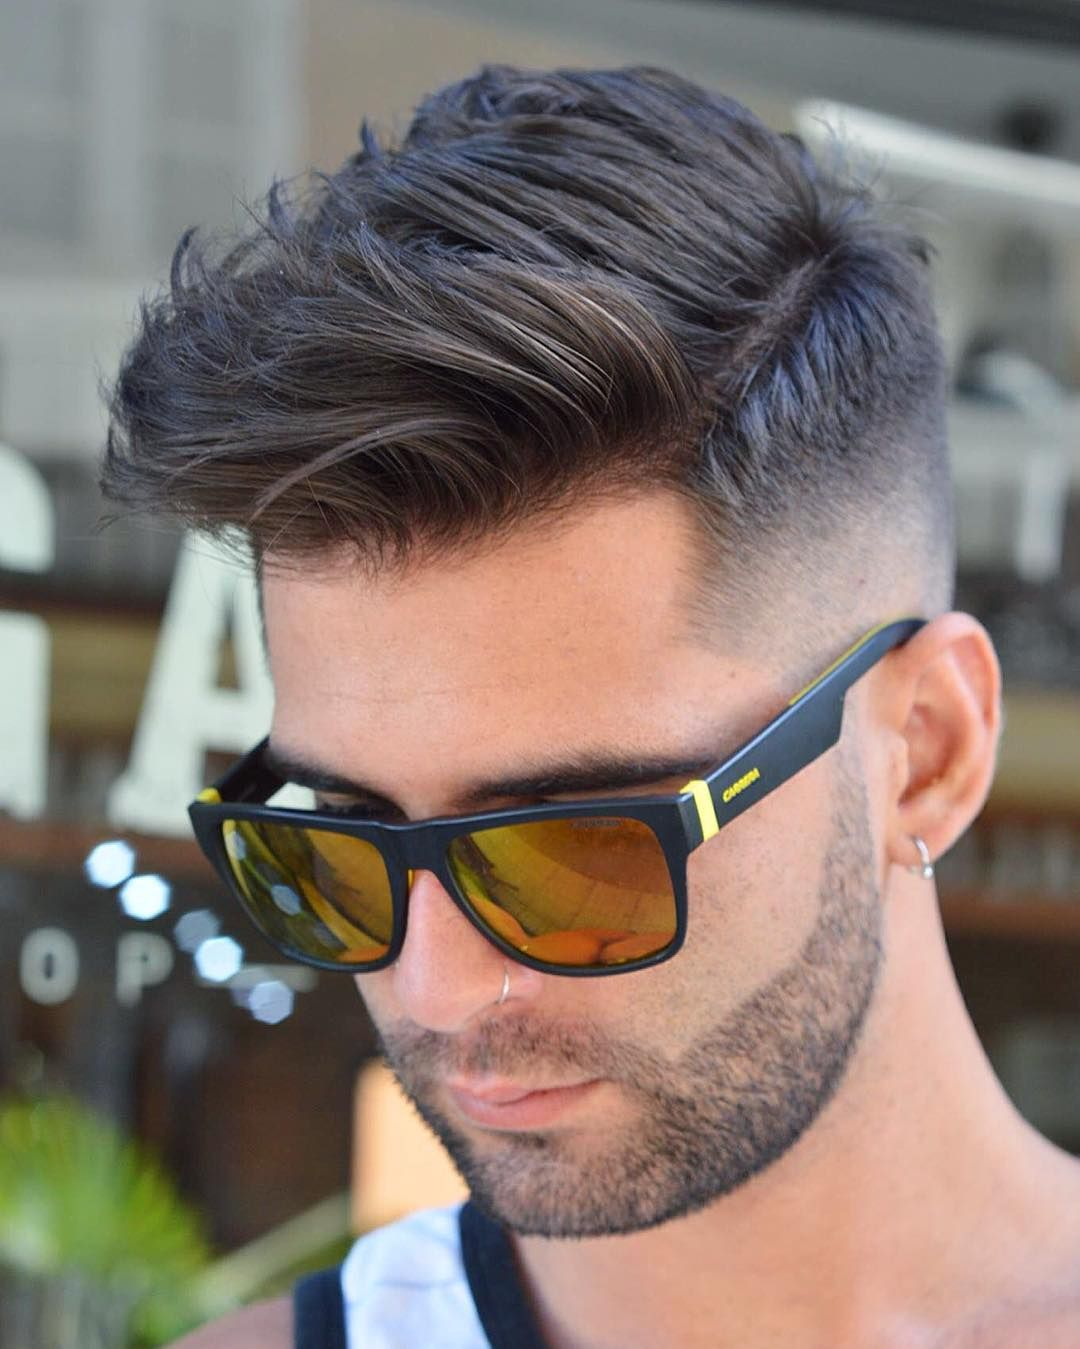 Best Men S Hairstyles For 2021 Mohawk Hairstyles Men Gents Hair Style Men New Hair Style